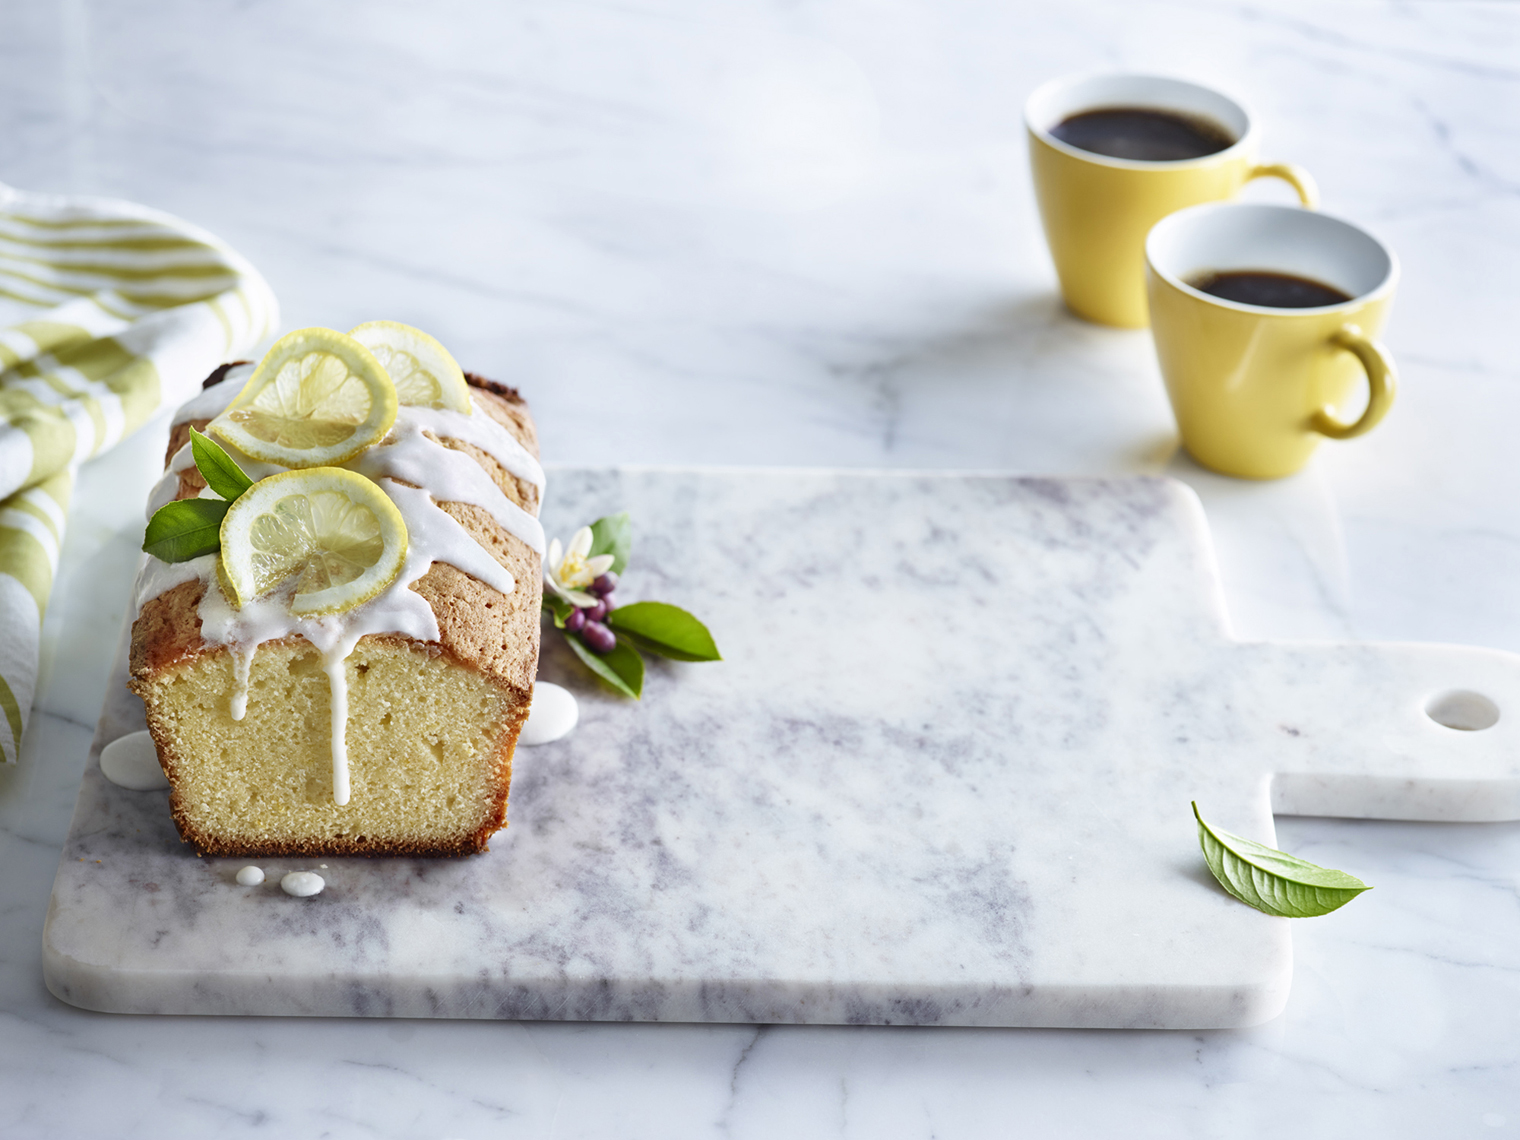 LEIGH_BEISCH_Luscious_Lemon_Loaf_31900C